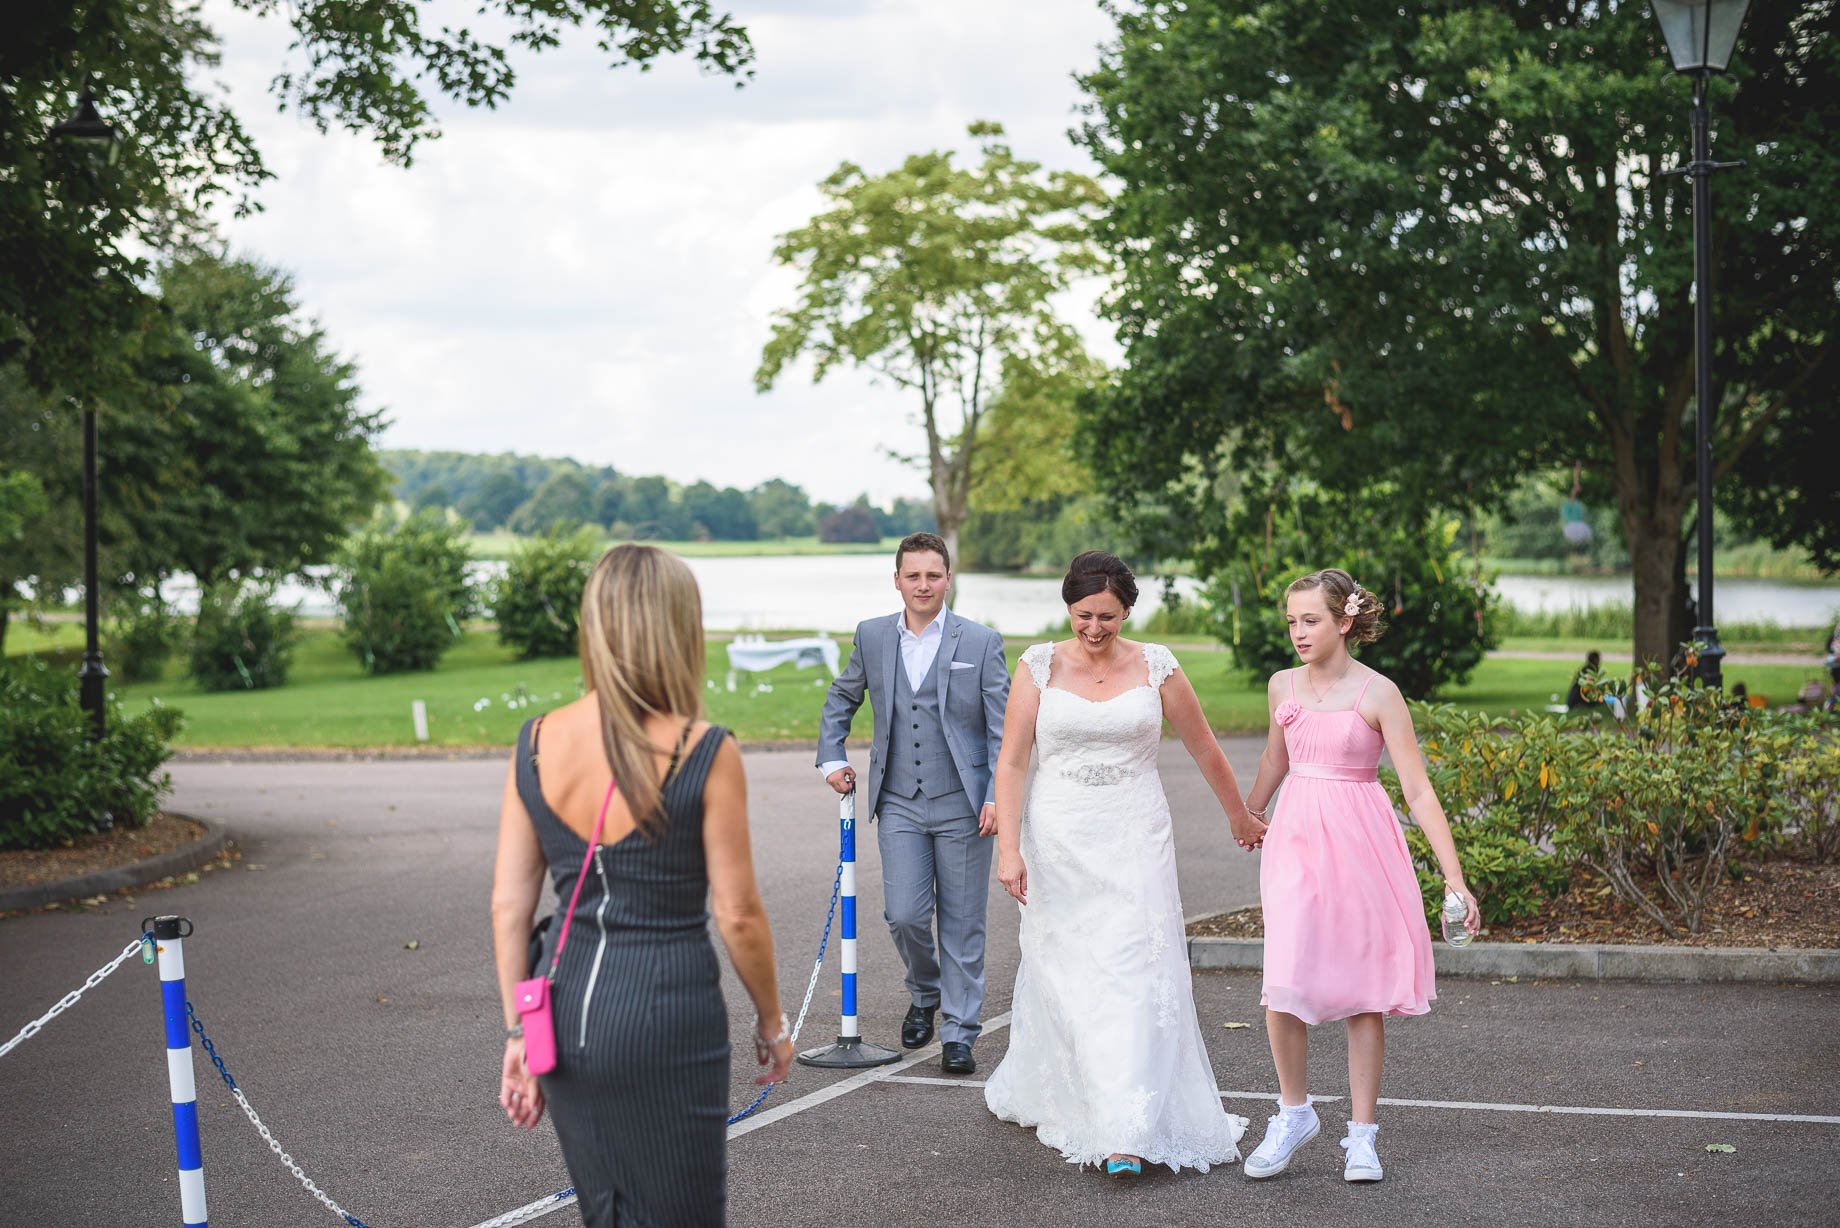 Luton Hoo wedding photography by Guy Collier Photography - Lauren and Gem (112 of 178)